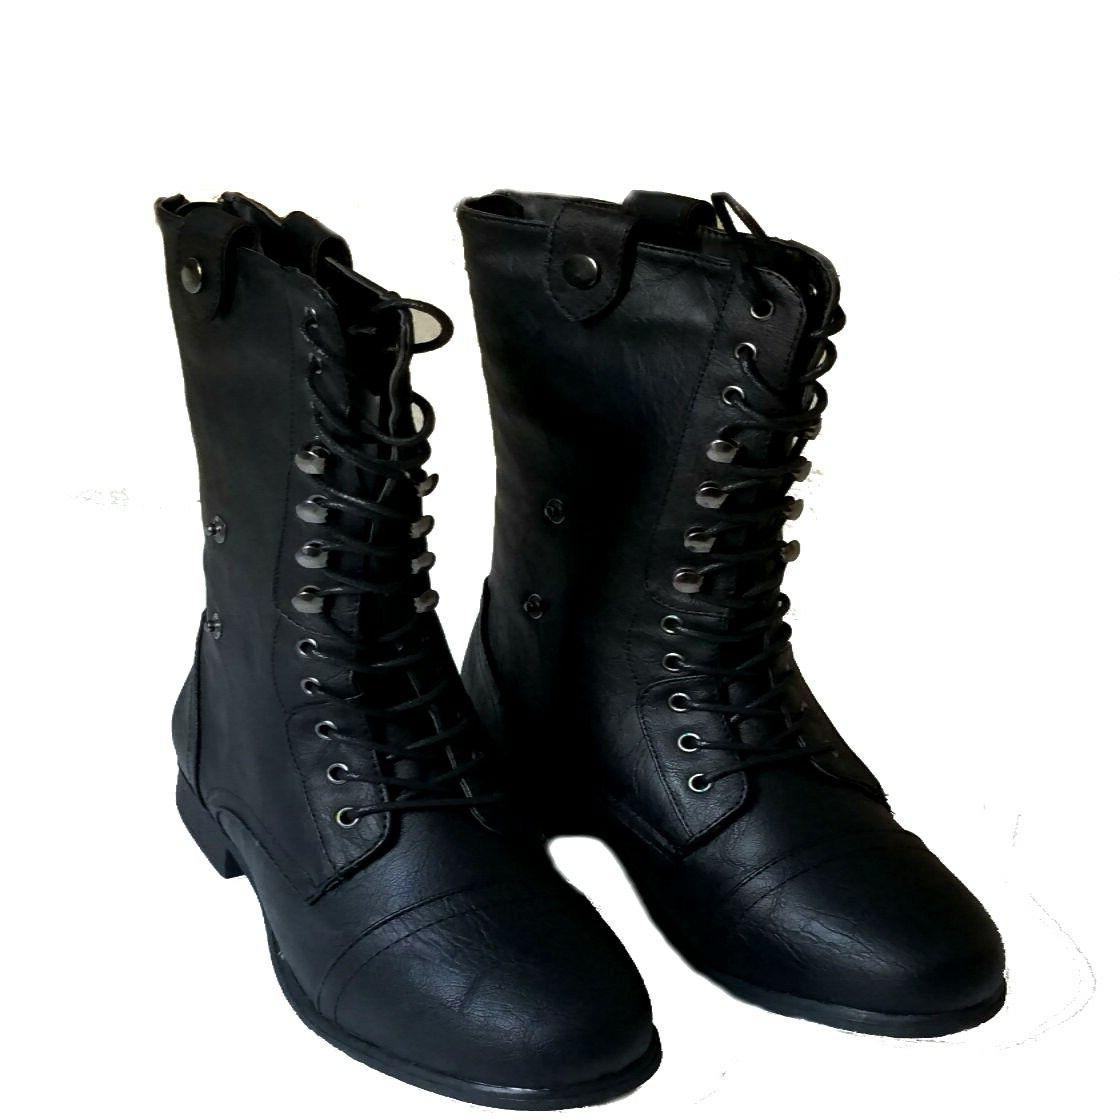 Top Modal Women's Mid Calf Combat Lace Boots